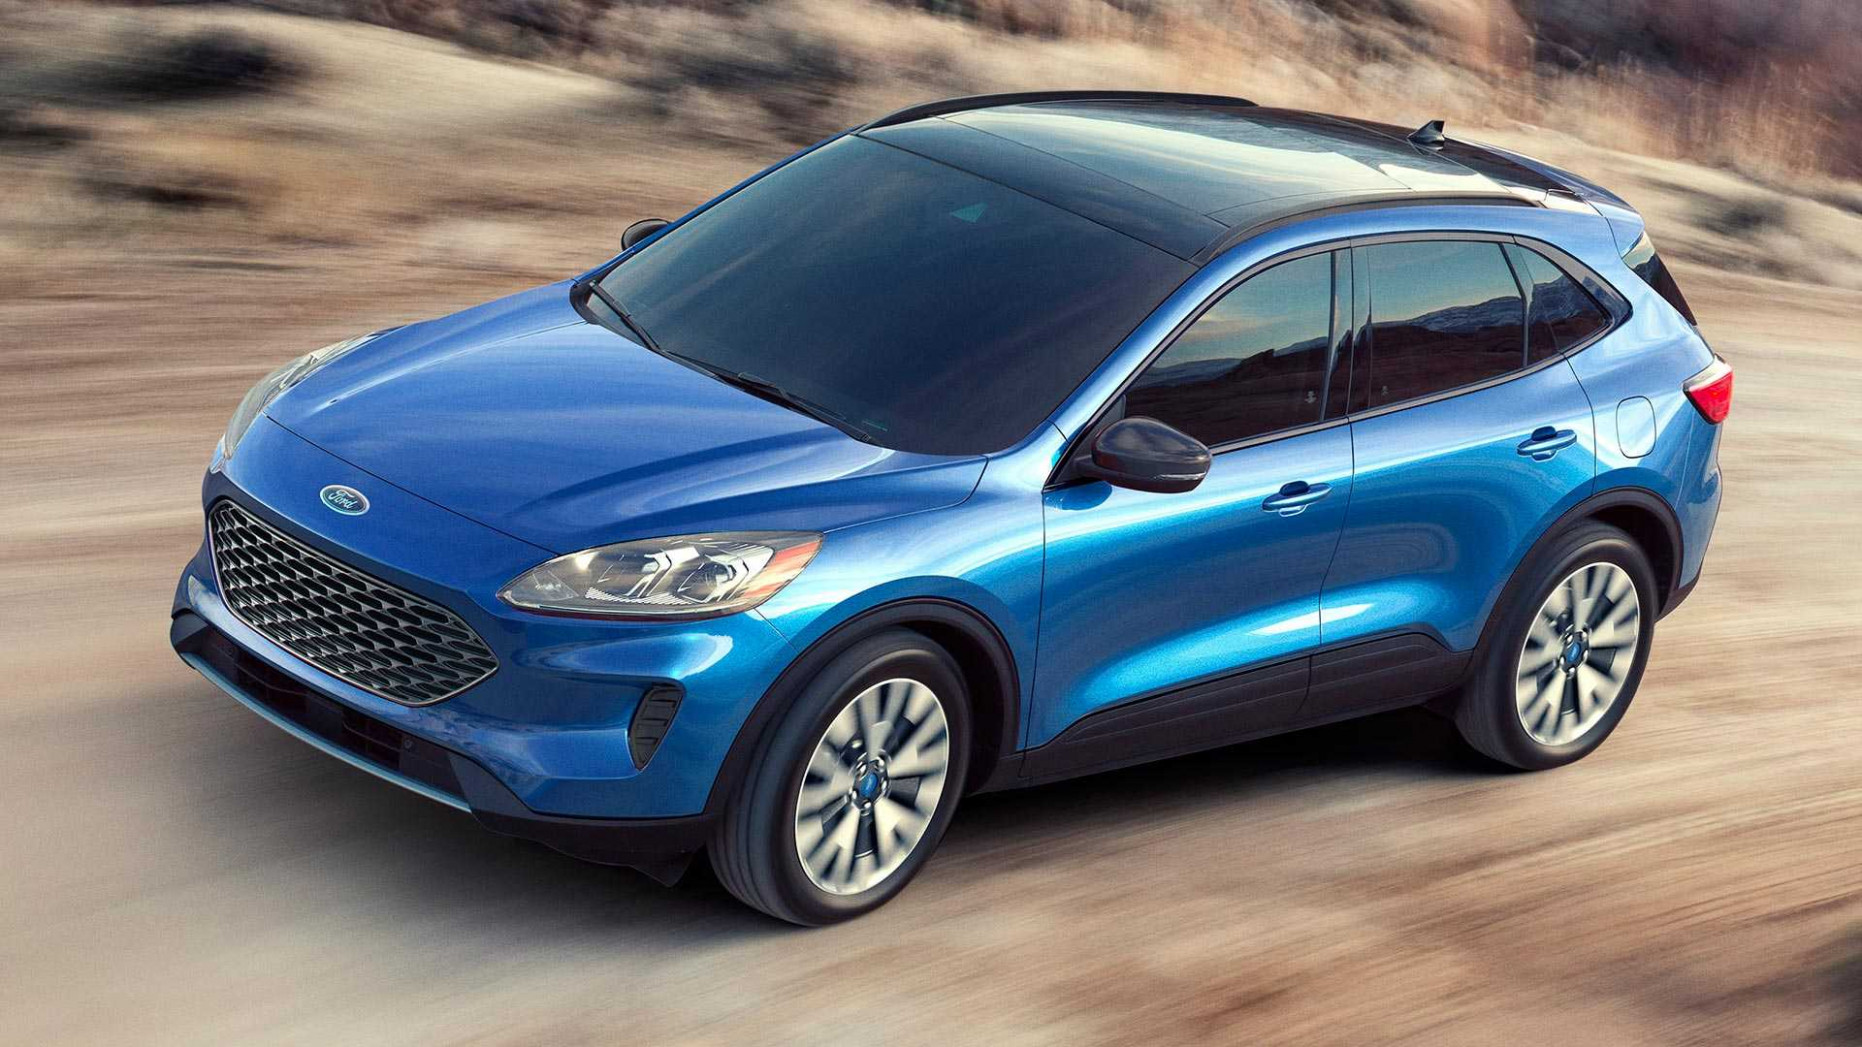 8 Ford Escape Debuts With Whole New Look, Two Hybrid Choices - ford yeni kuga 2020